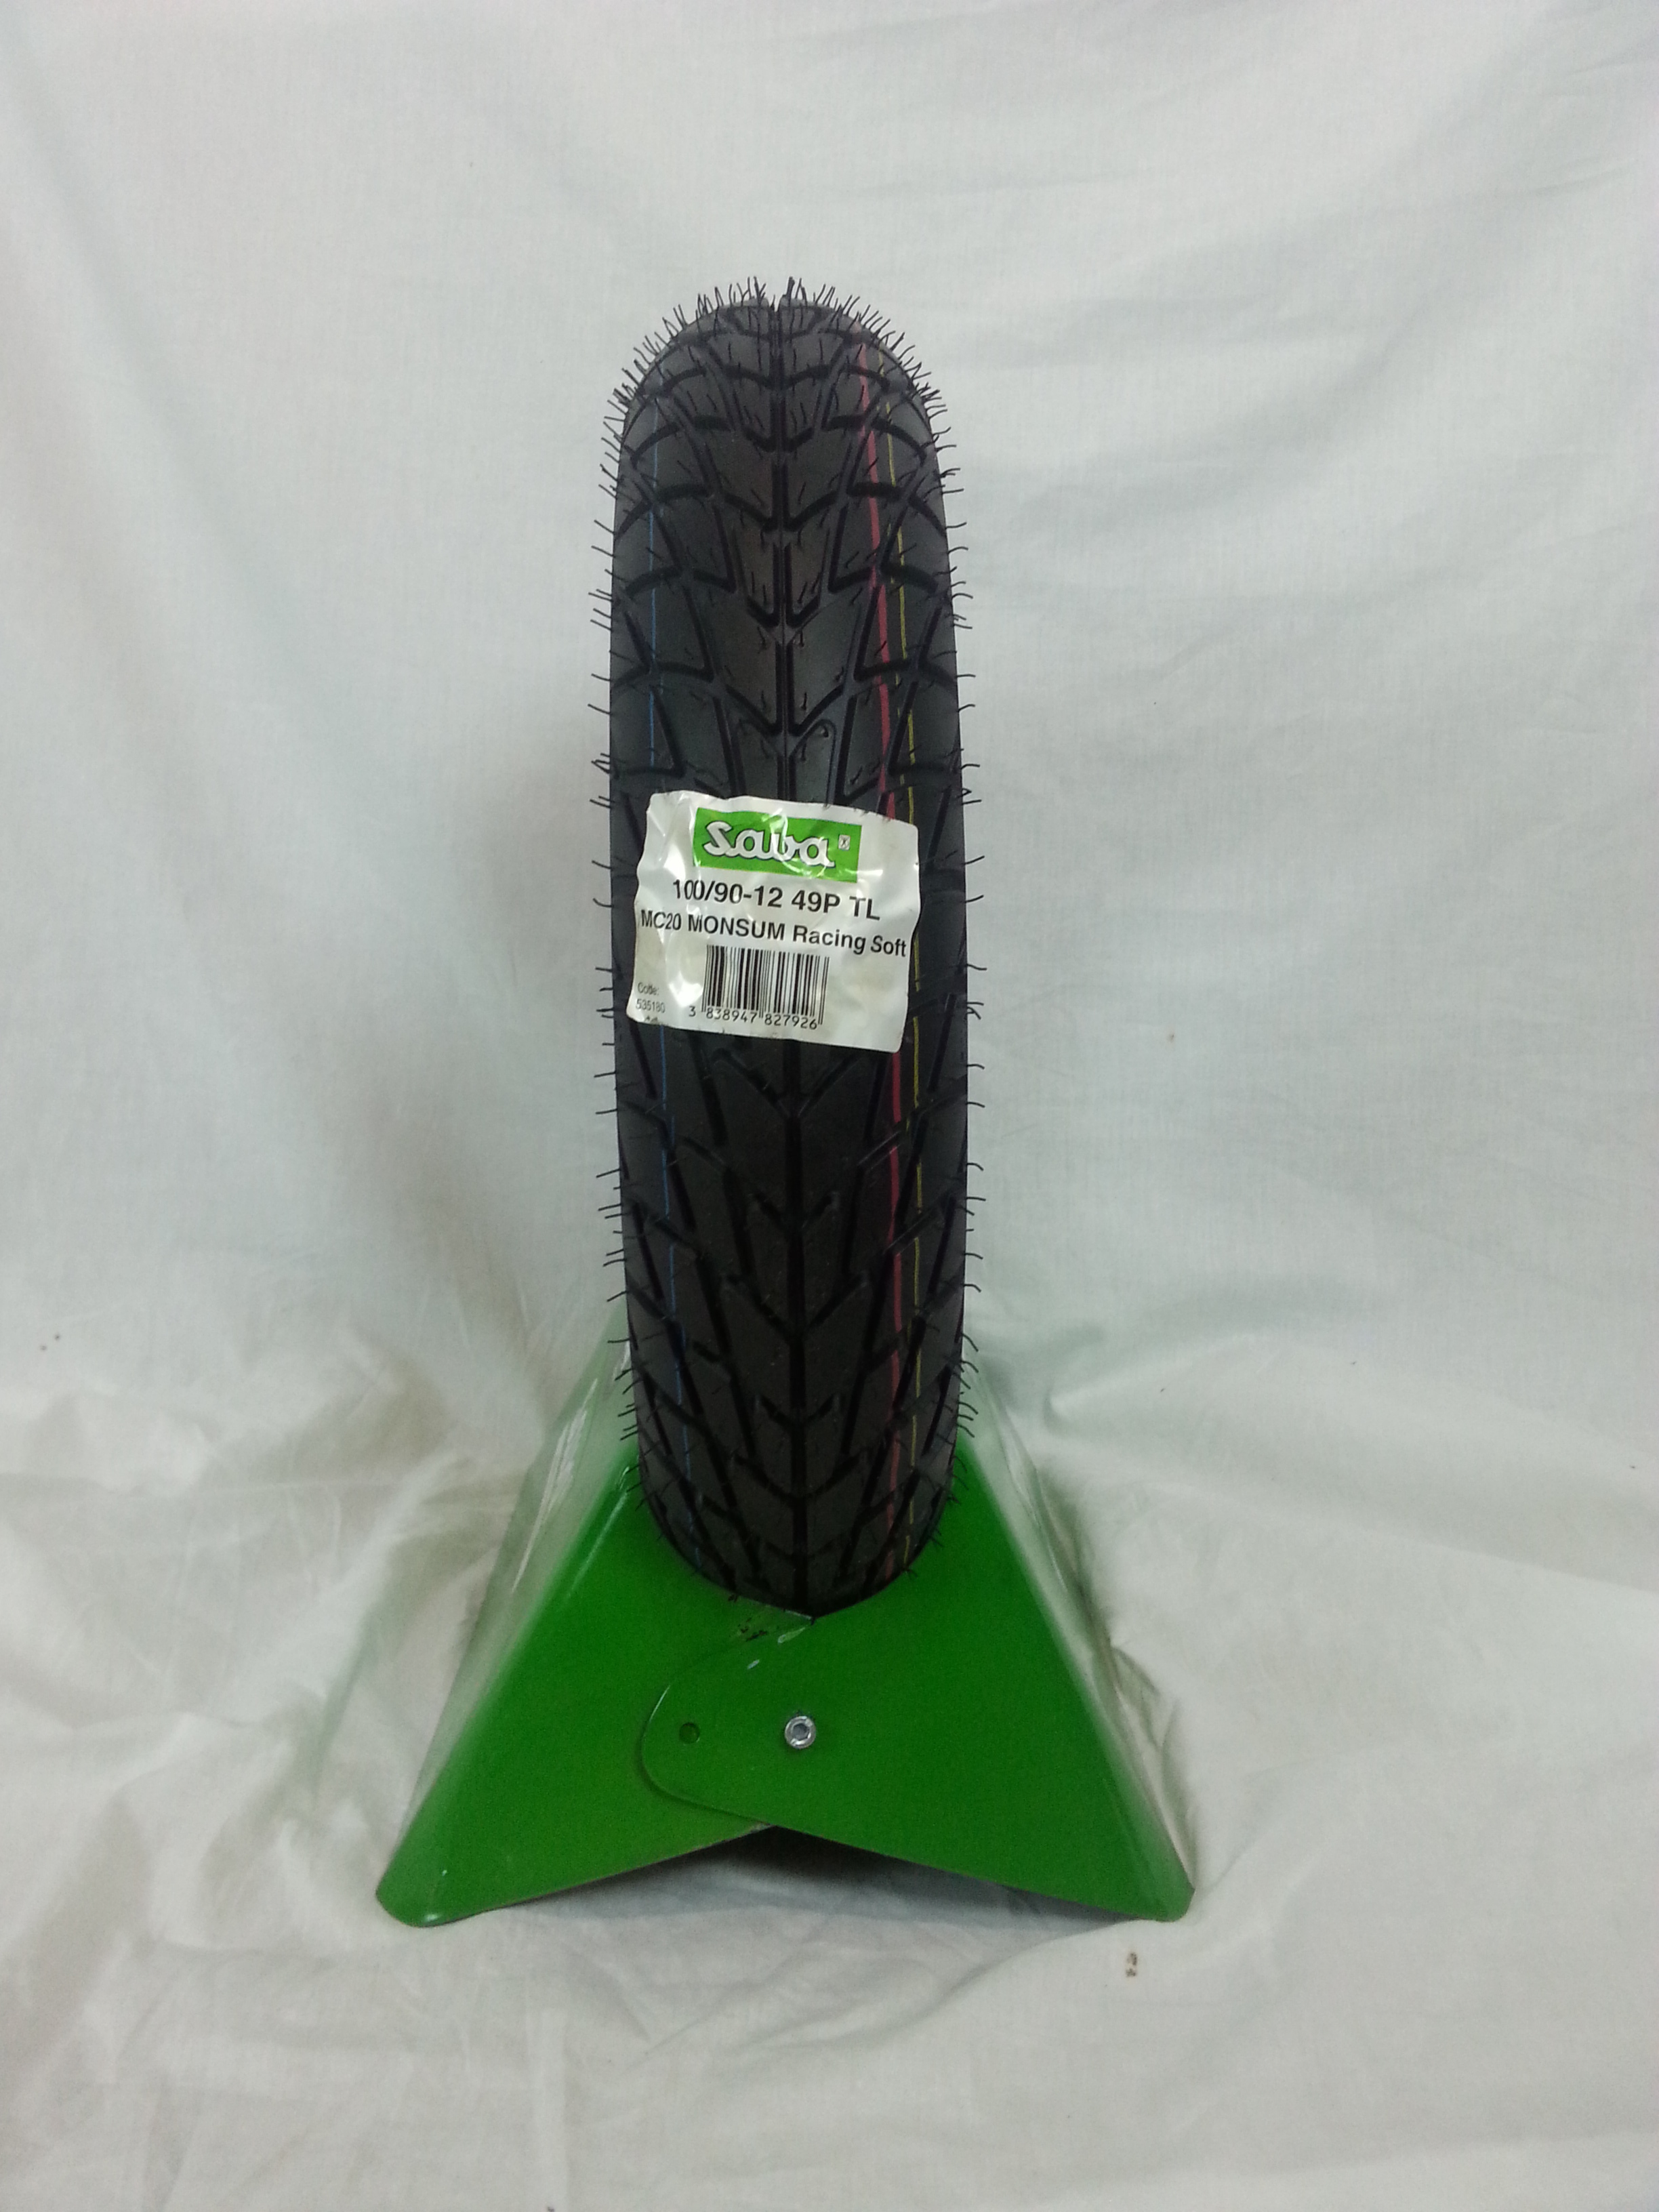 SVRP KAYO High Quality 12 Inch MiniGP Race Tires